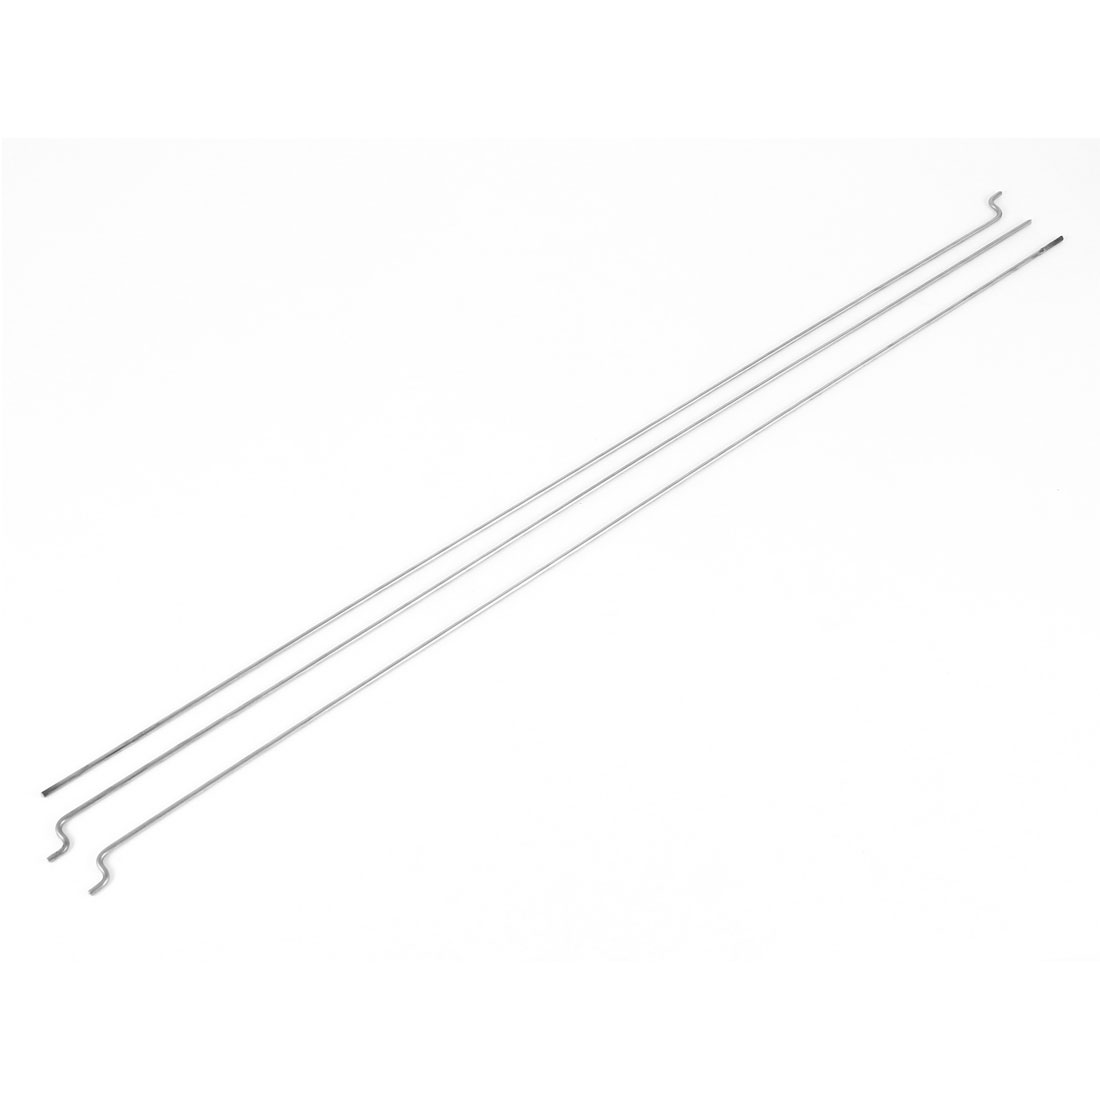 3 Pcs 300mm x 1.5mm Stainless Steel Push Rods Piano Wire for EP Nitro Gas Boat Marine